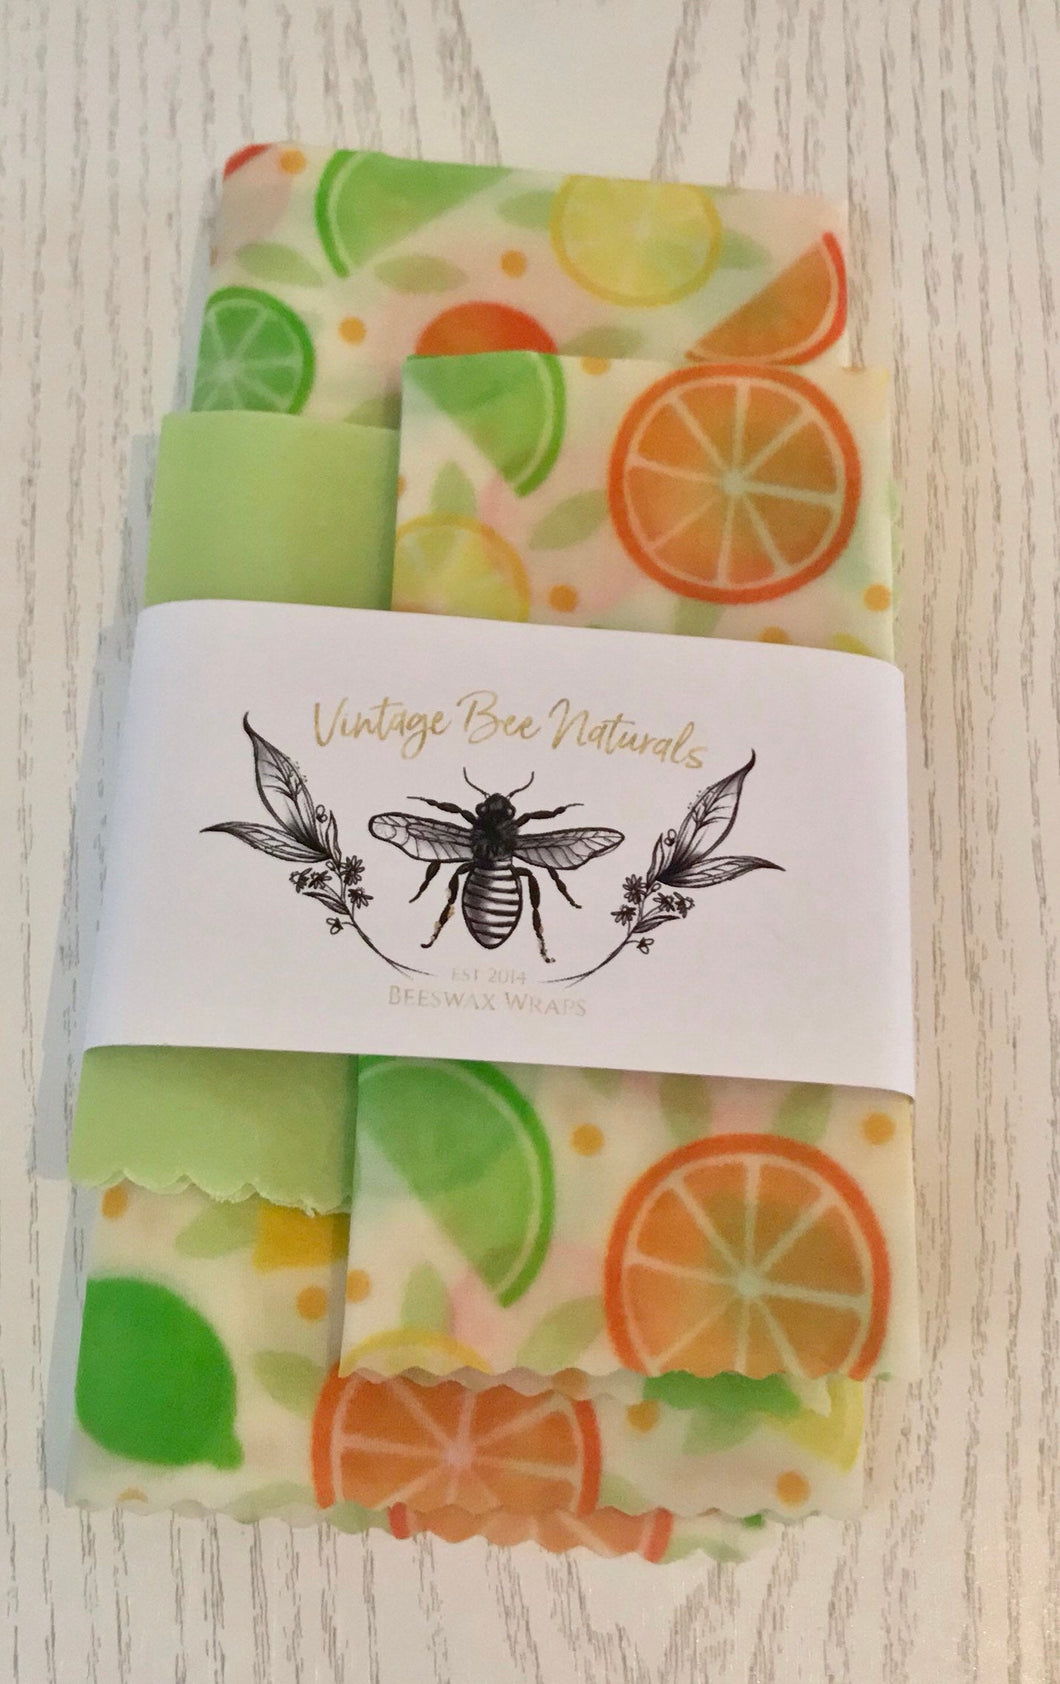 Citrus Fruits Beeswax Food Wrap Set of 3 Medium & Large Re-usable | Organic Cotton | zero waste | UK - Beeswax Wraps